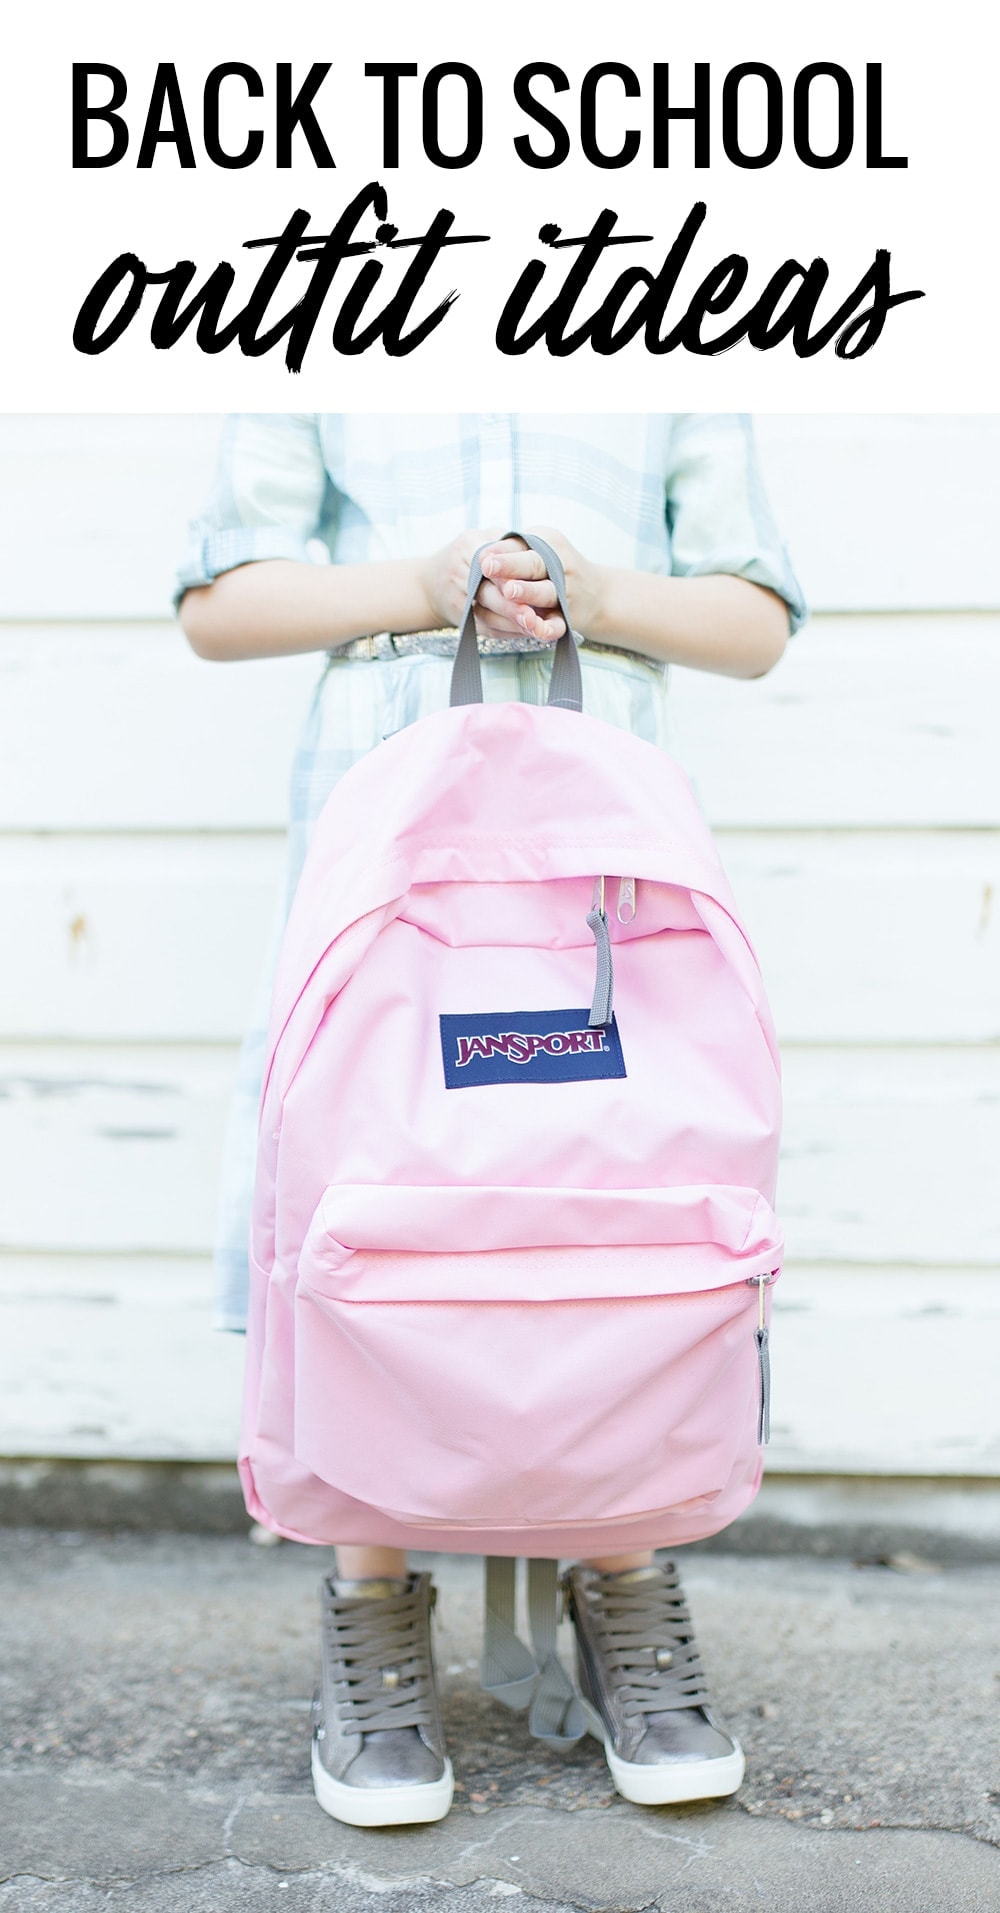 fun, stylish, and affordable back to school outfit ideas for kids!